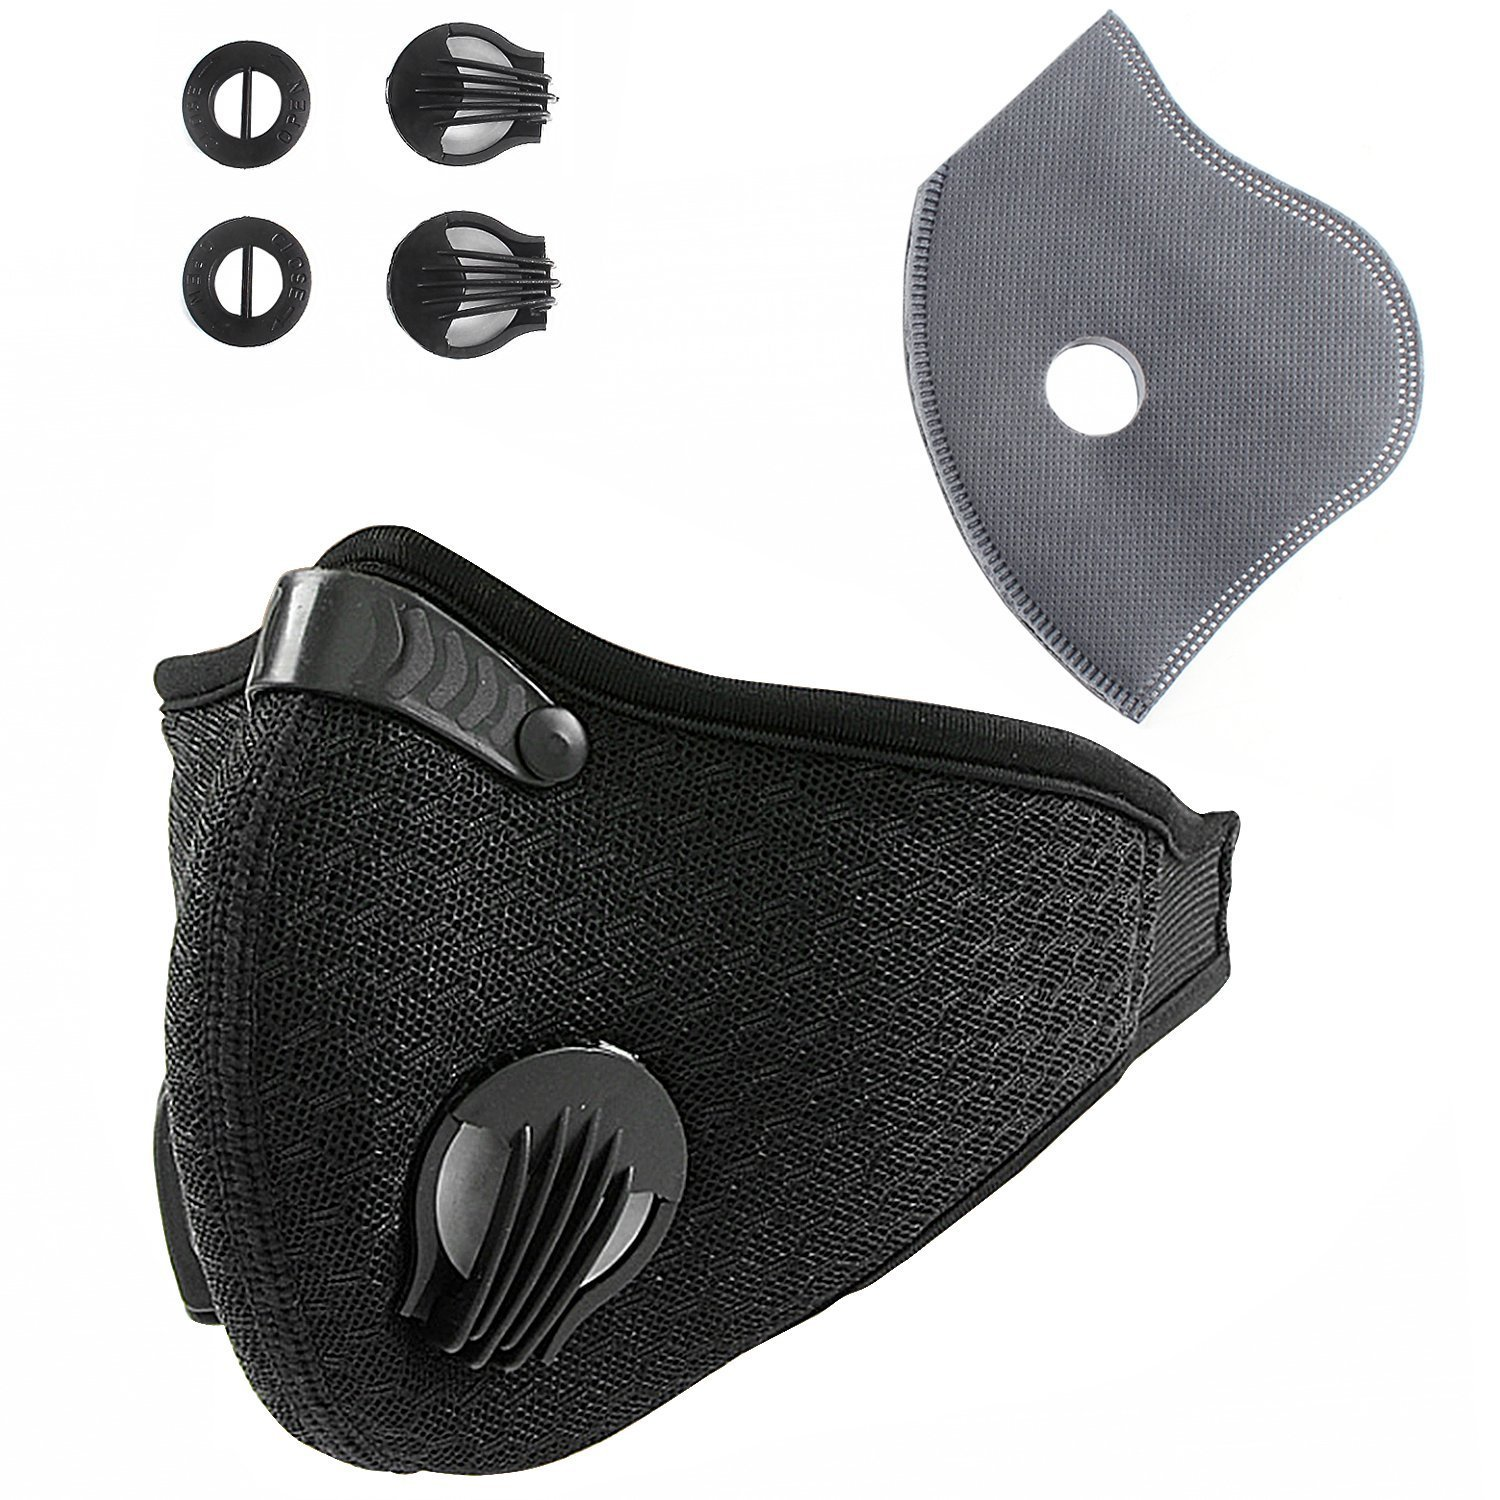 Unigear Activated Carbon Dustproof/Dust Mask - with Extra Filter Cotton Sheet and Valves for Exhaust Gas, Pollen Allergy, PM2.5, Running, Cycling, Outdoor Activities